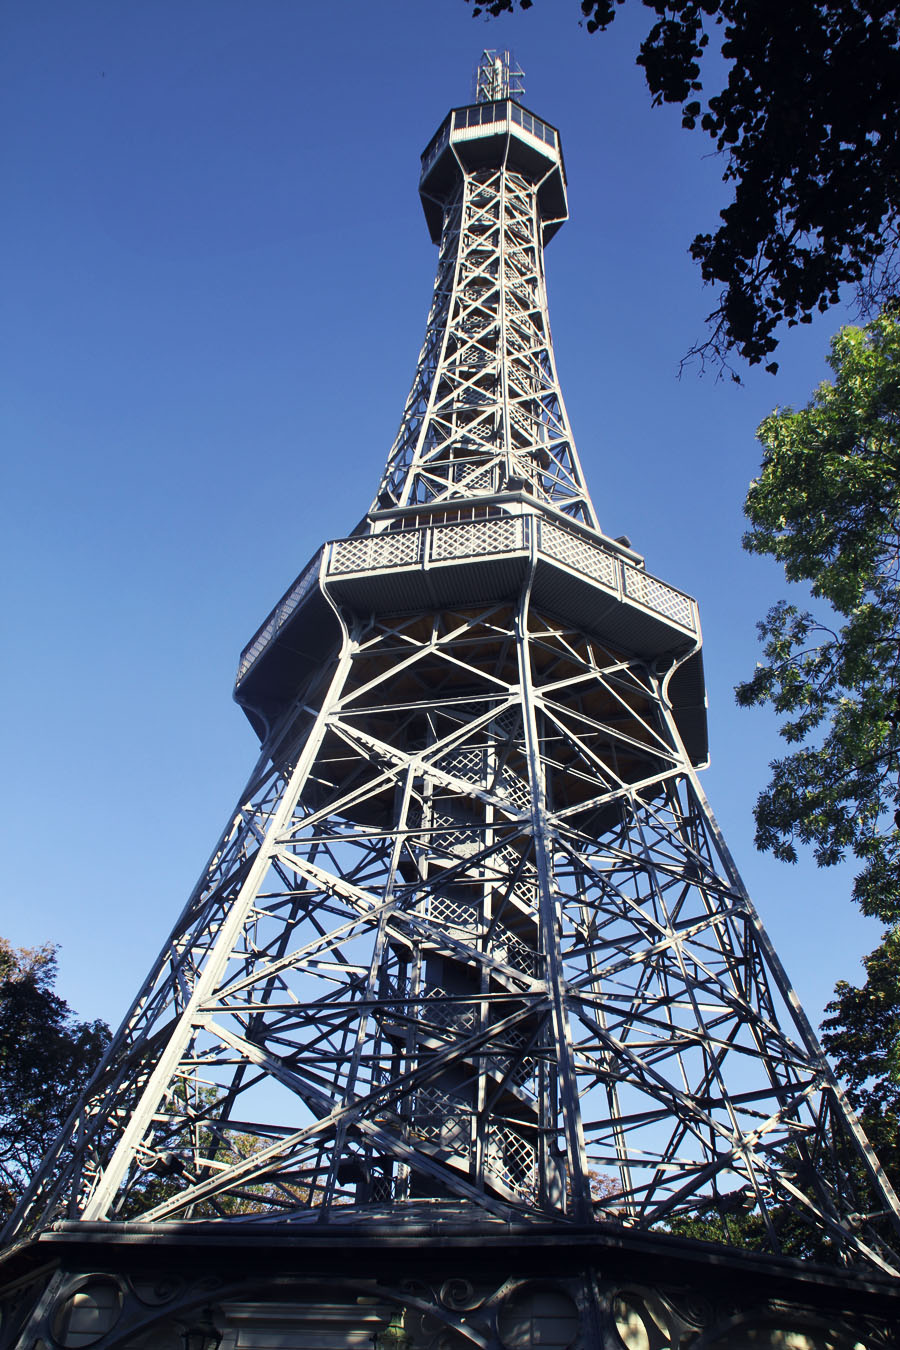 Petrin Tower Prague, Petrin Lookout Tower in Prague, The Petrin Lookout tower  is a 60 metre high steel framework that resembles the Eiffel tower albeit smaller and has a different structure. Despite, it being situated on a hill gives it a higher altitude than the Eiffel tower.